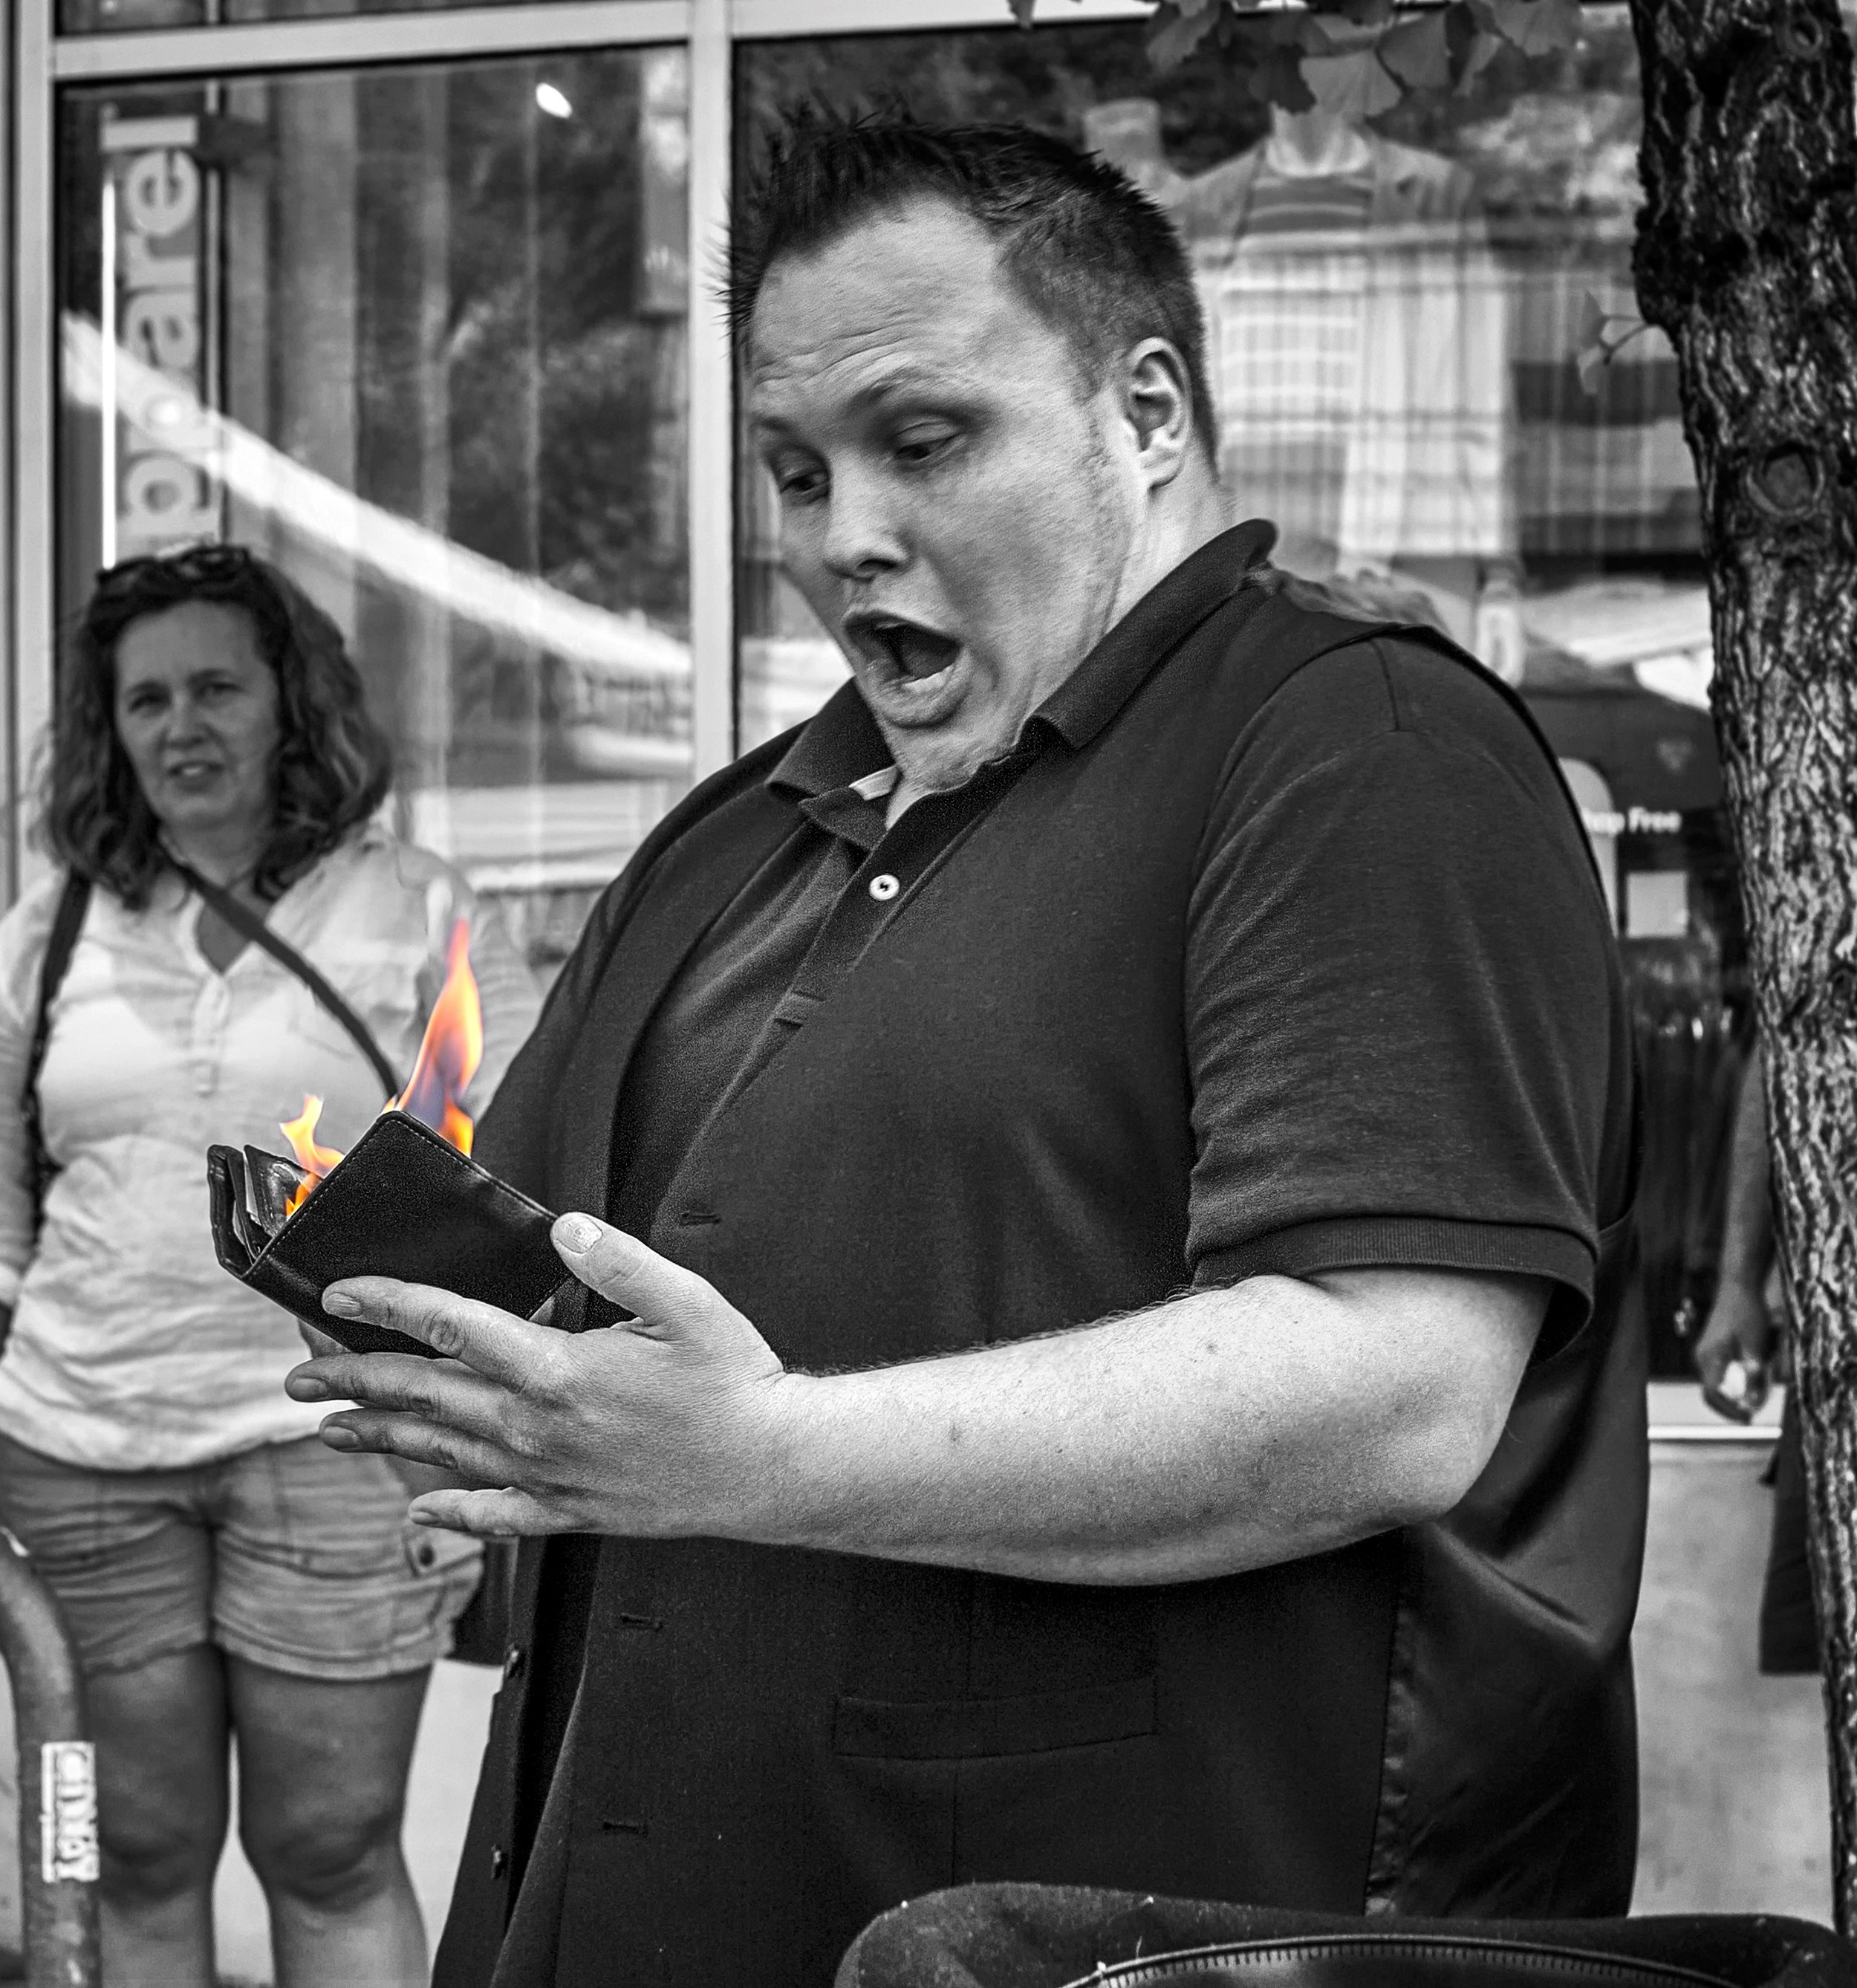 Fire wallets are always fun. Just ask Brian Proctor (Phots by Darren Sethe 2018)